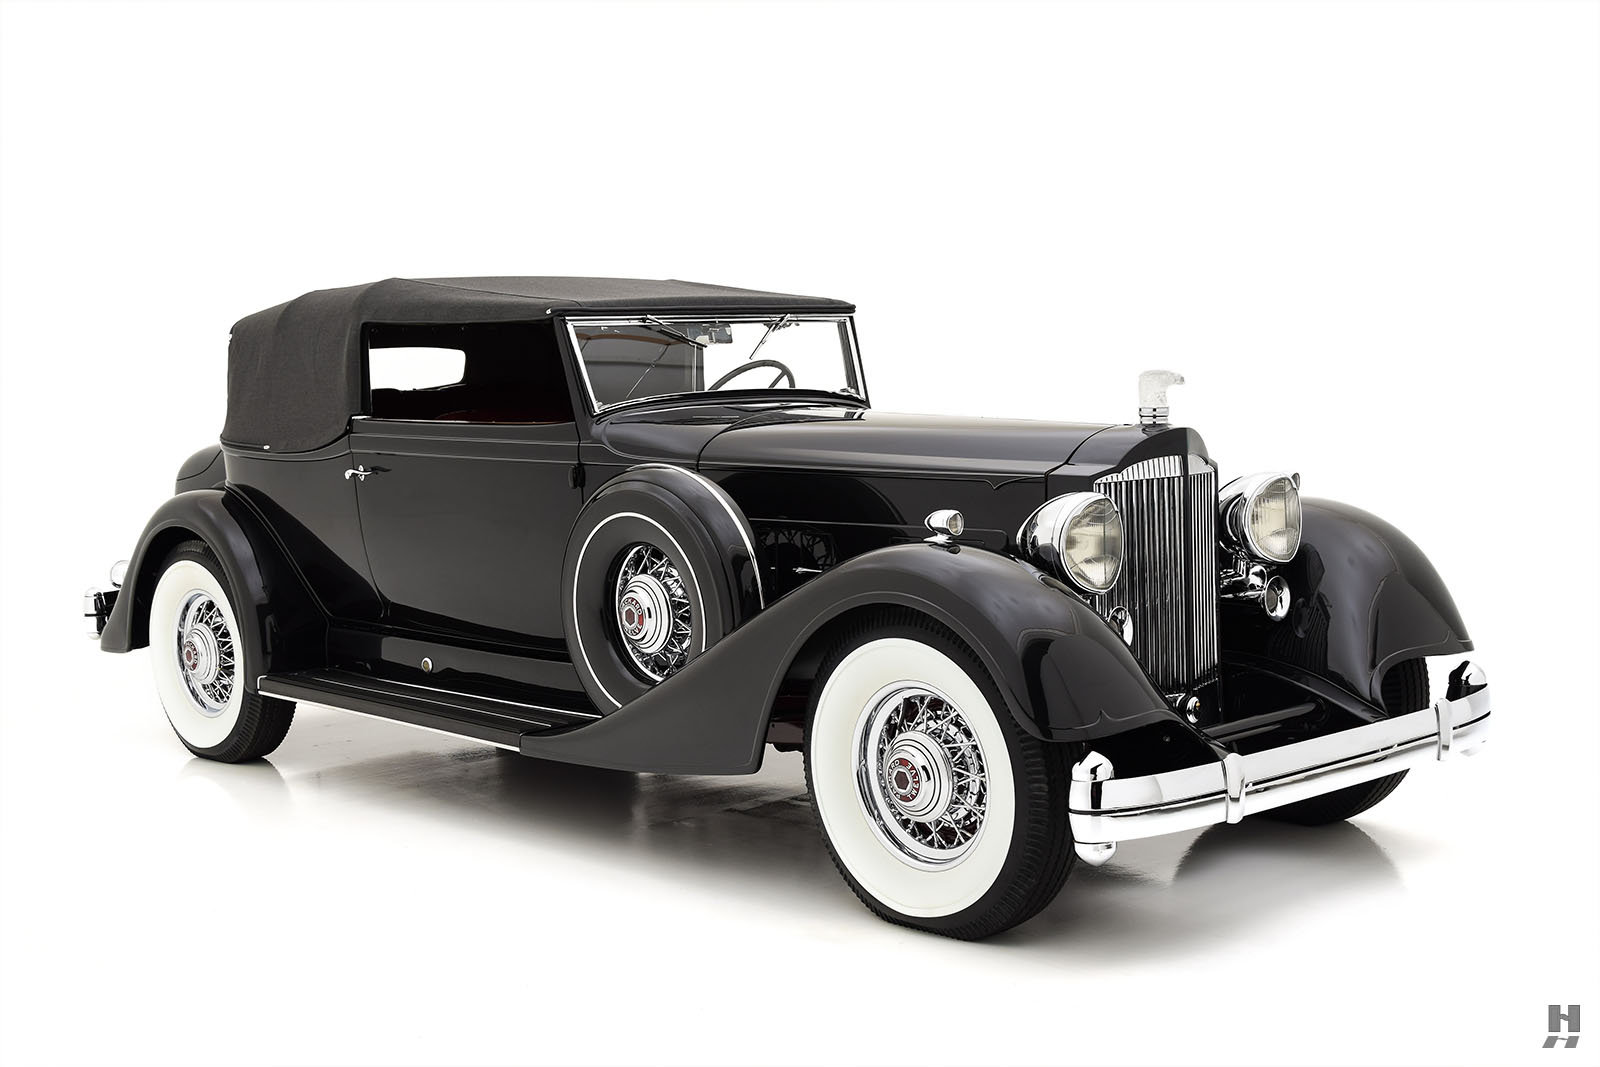 1934 PACKARD TWELVE VICTORIA CONVERTIBLE For Sale (picture 2 of 6)